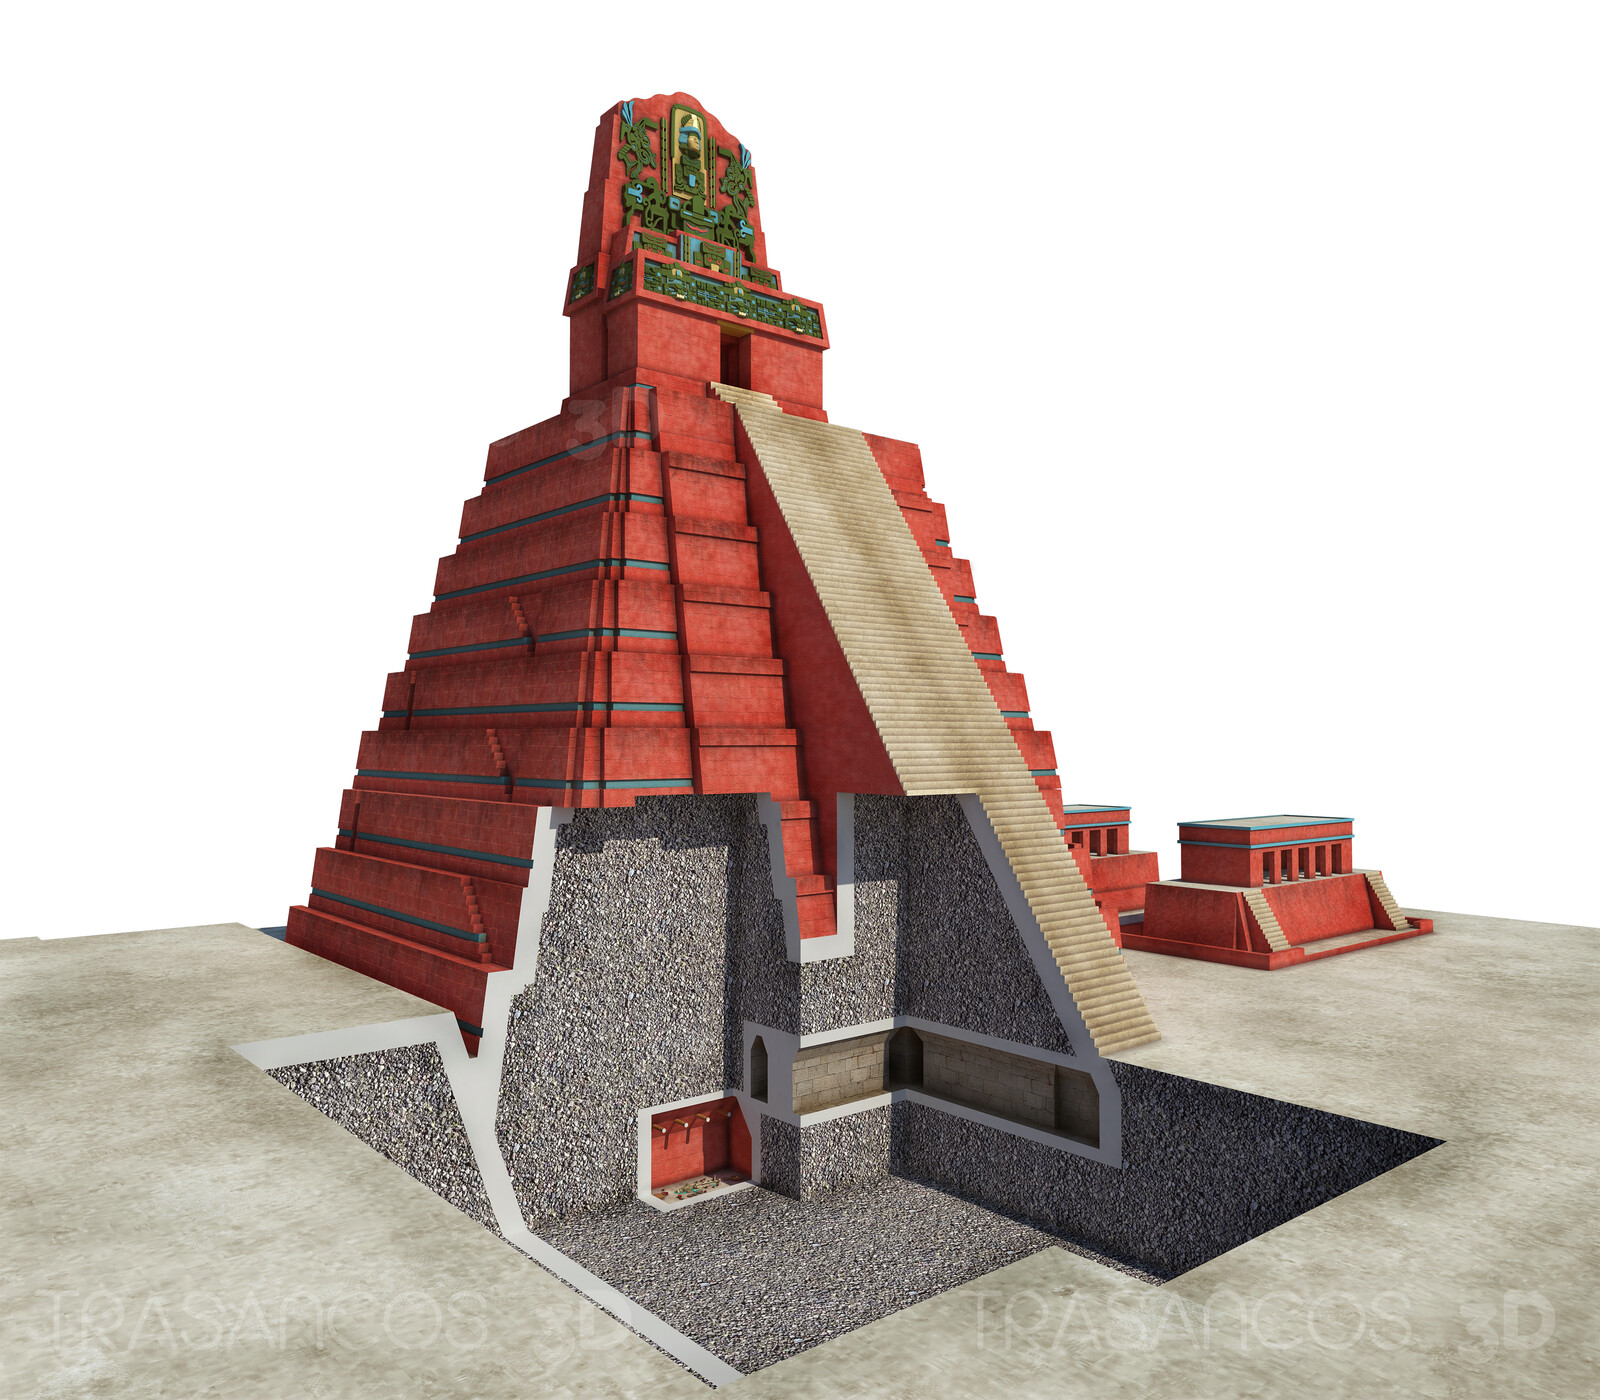 Cut away of the Temple I (or Temple of the Great Jaguar) In Tikal, showing the tomb of the king Jasaw Chan K'awil. Modeled in collaboration with: - Andrés Armesto